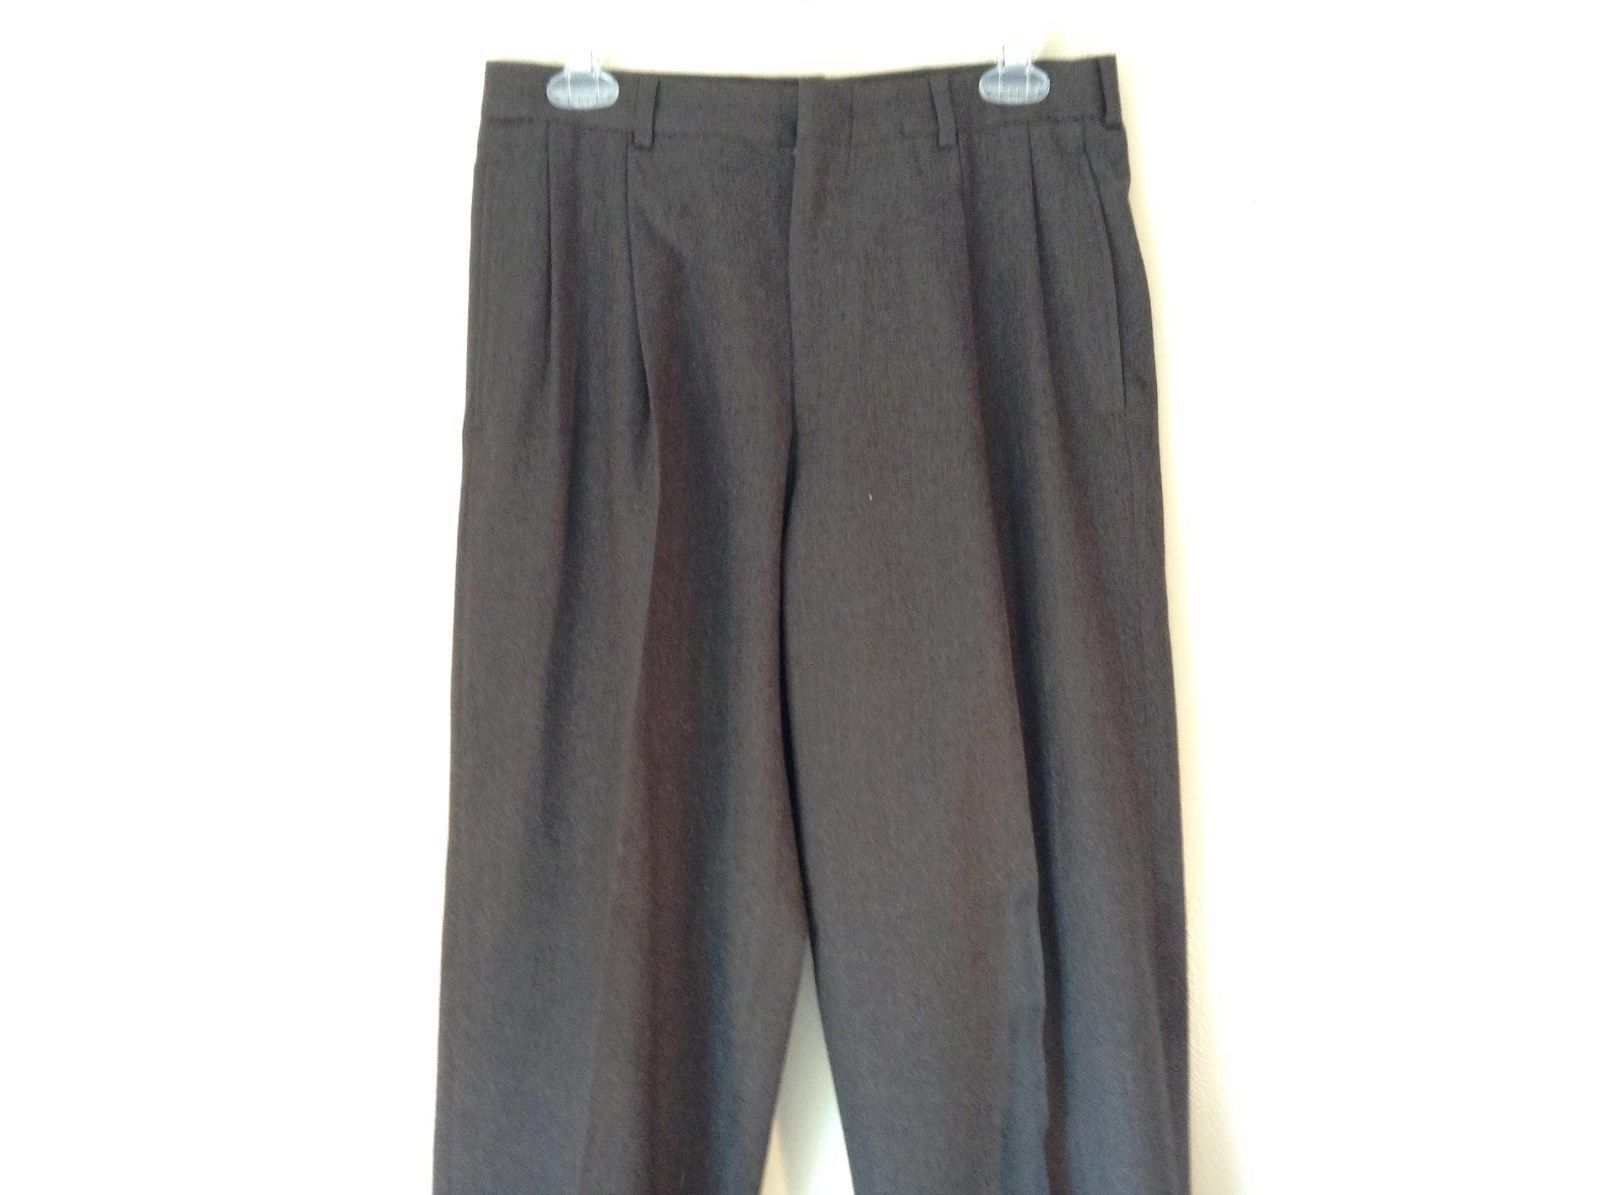 Charcoal Pleated Front Brooks Brothers Dress Pants 100 Percent Wool Made in USA